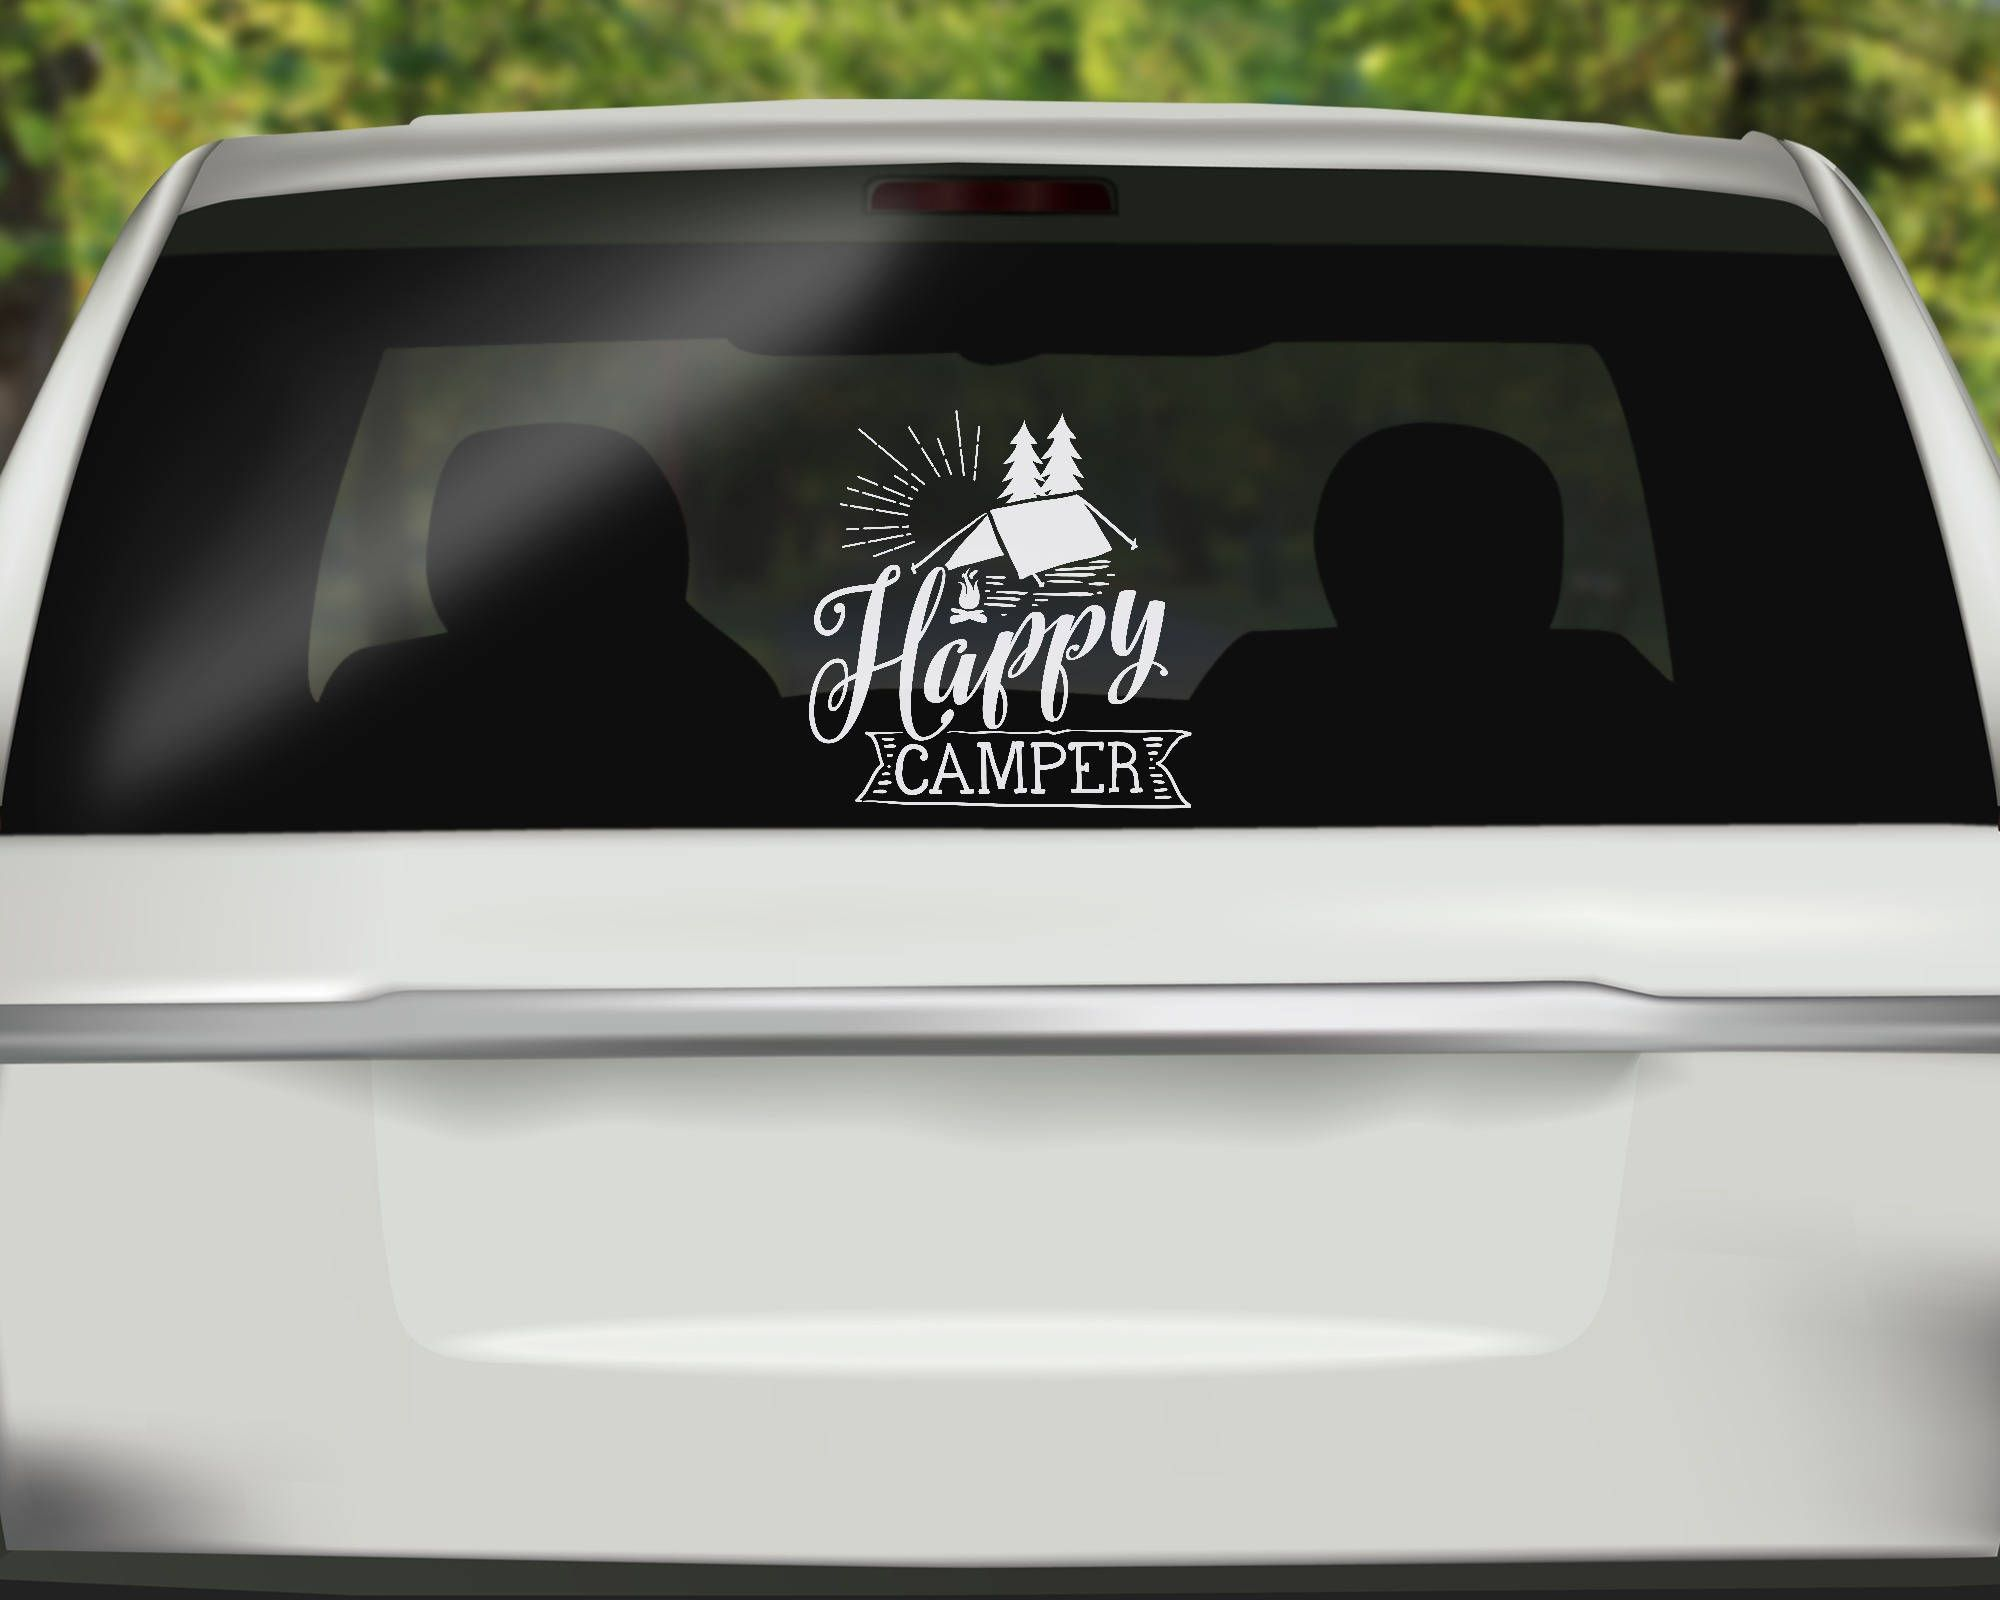 Happy Camper Decal Travel Car Decal Camping Sticker Tent